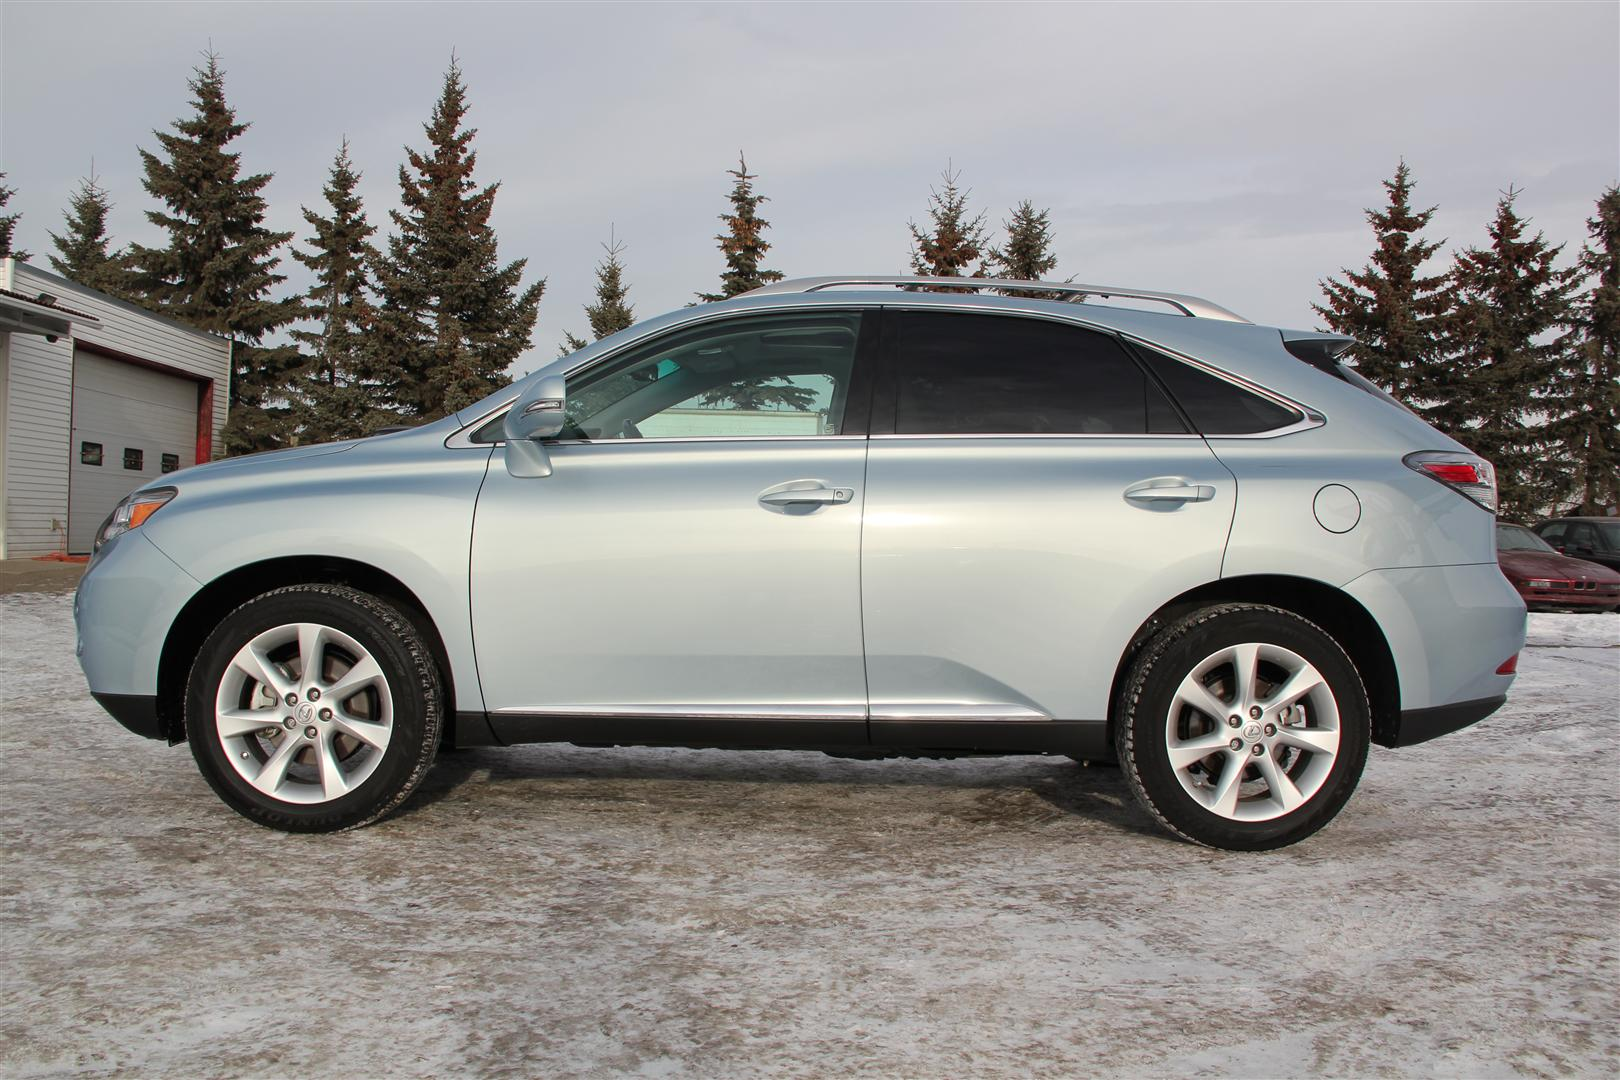 2012 lexus rx350 awd ultra premium 19in wheels envision auto. Black Bedroom Furniture Sets. Home Design Ideas